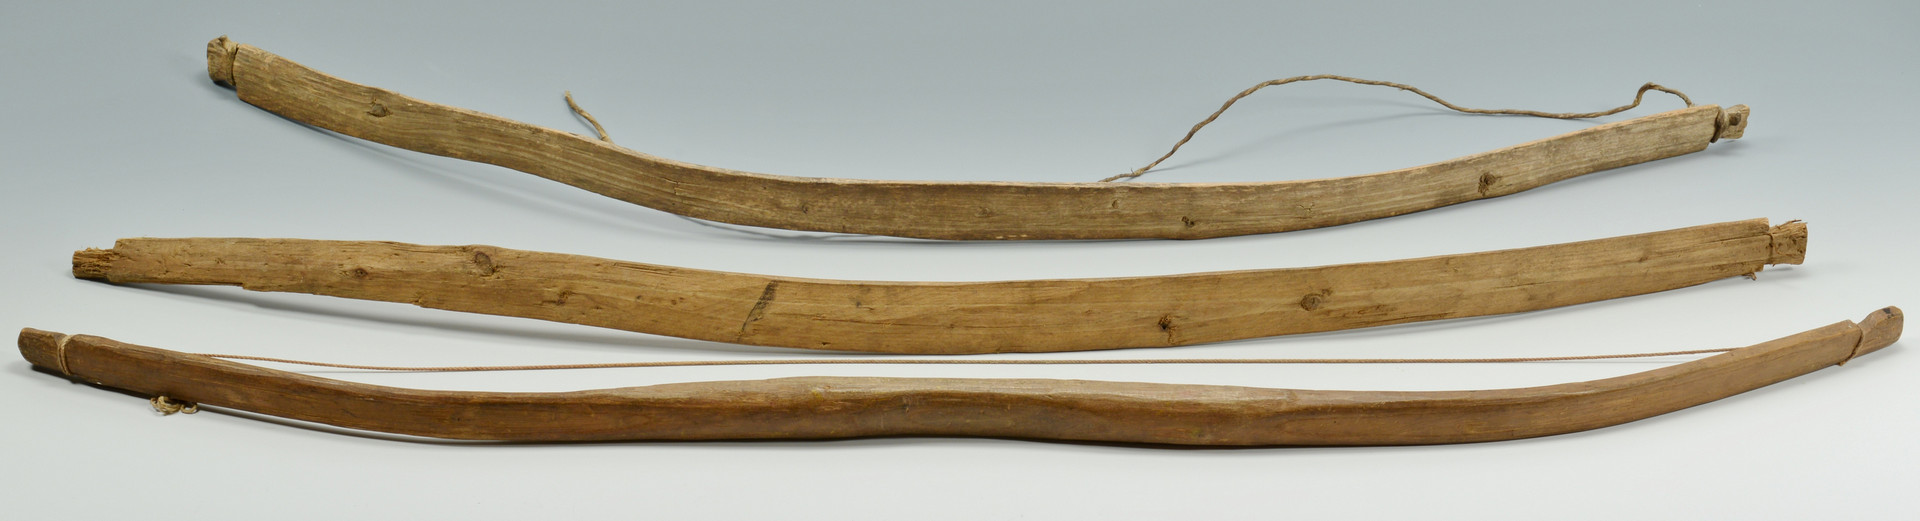 Lot 327: Plains Indian Quiver, Bows, Arrows